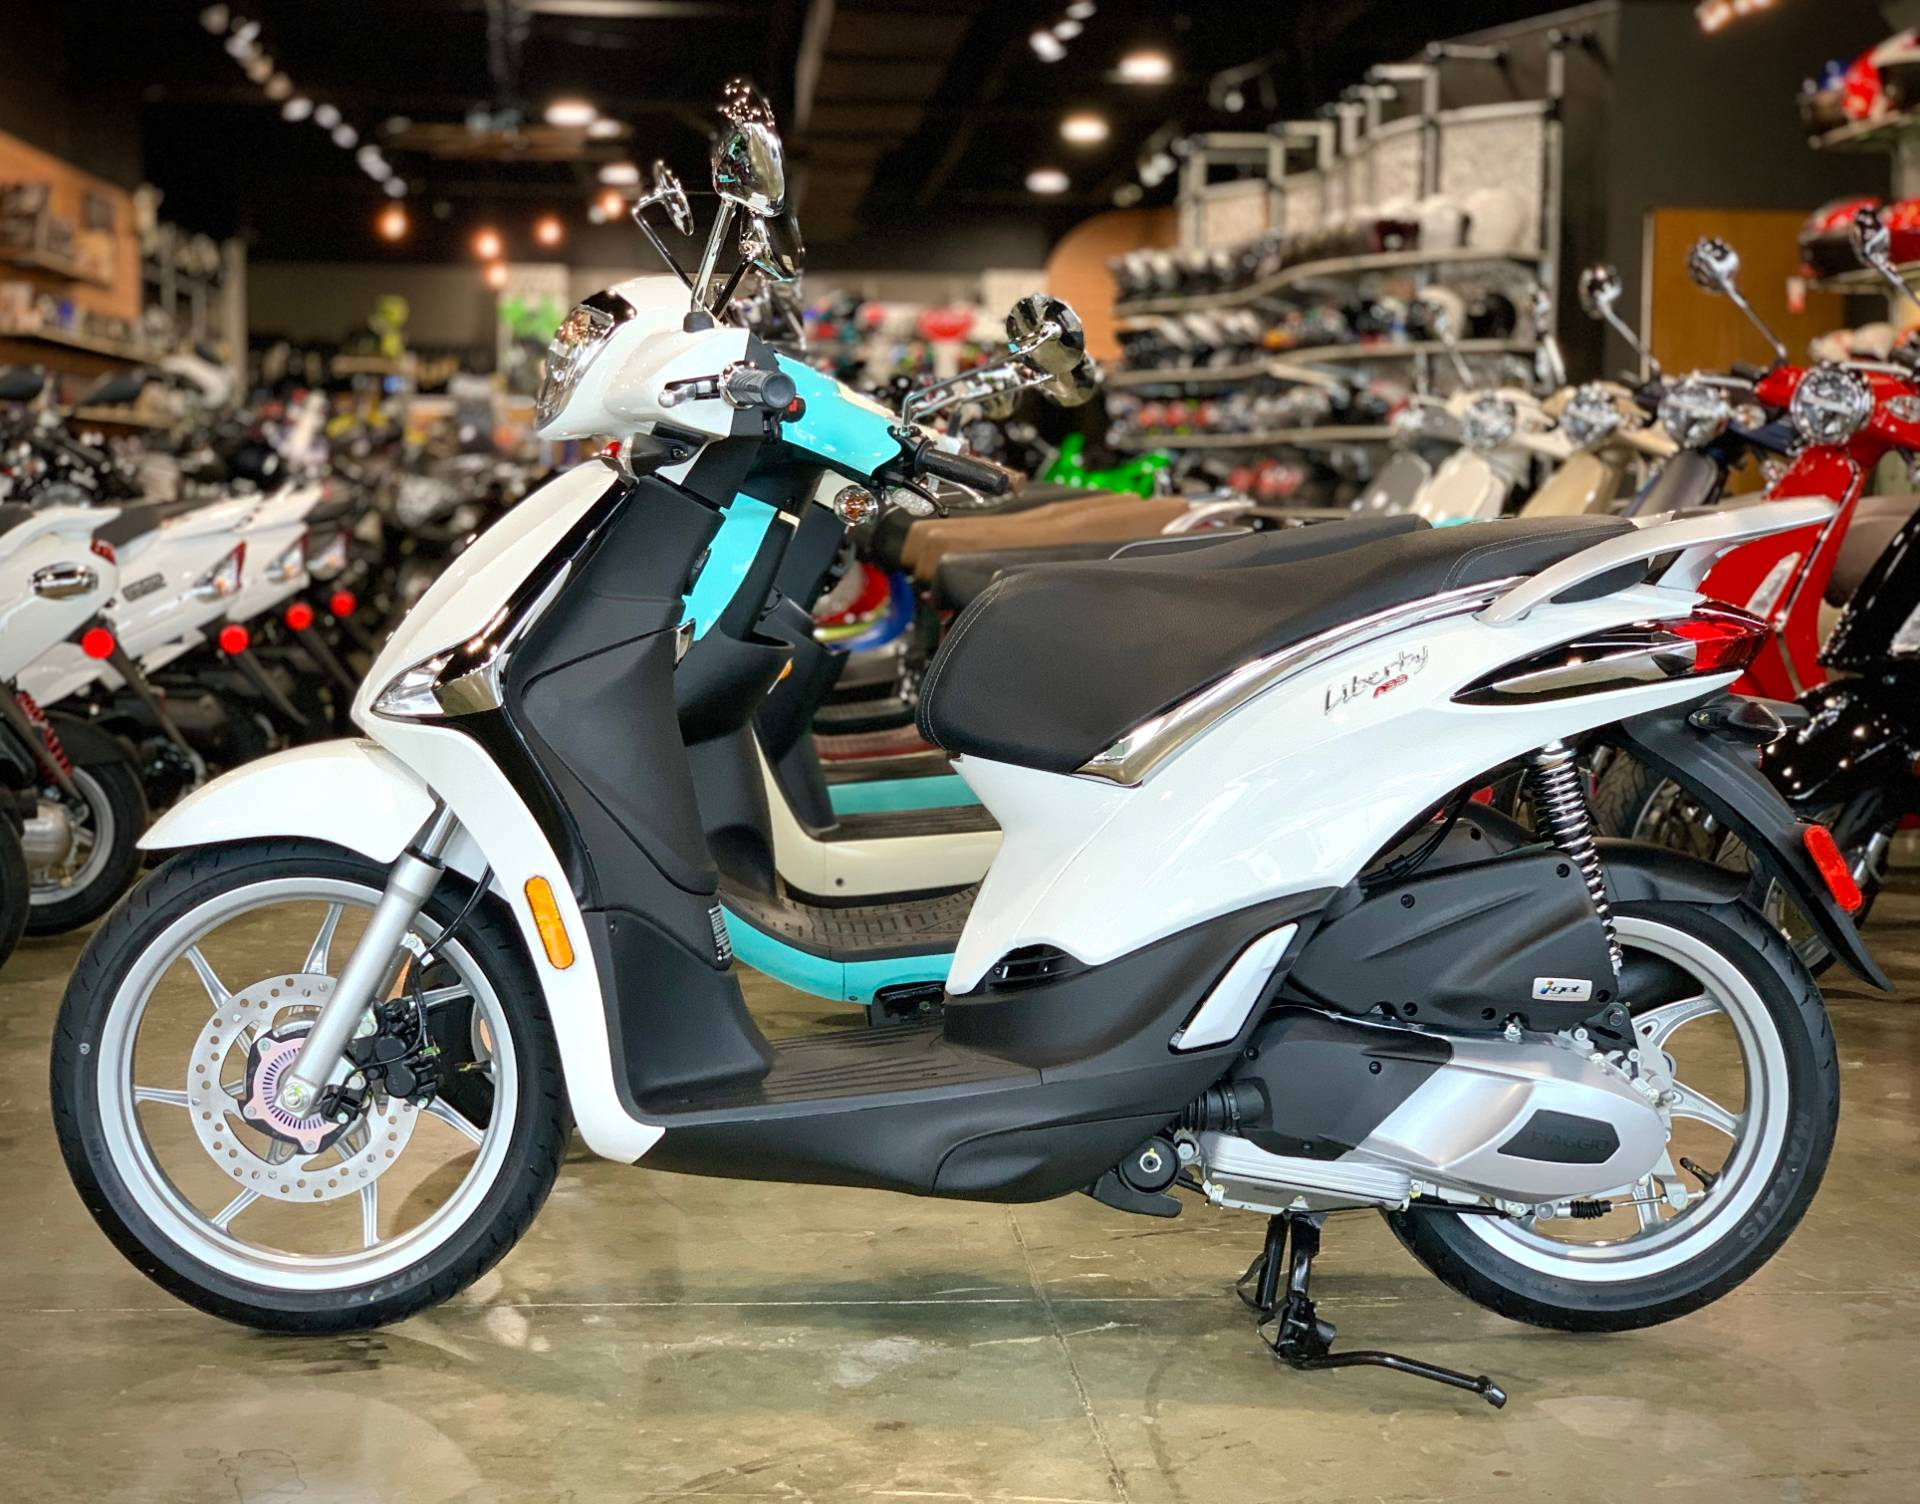 2020 Piaggio Liberty 150 in Plano, Texas - Photo 2